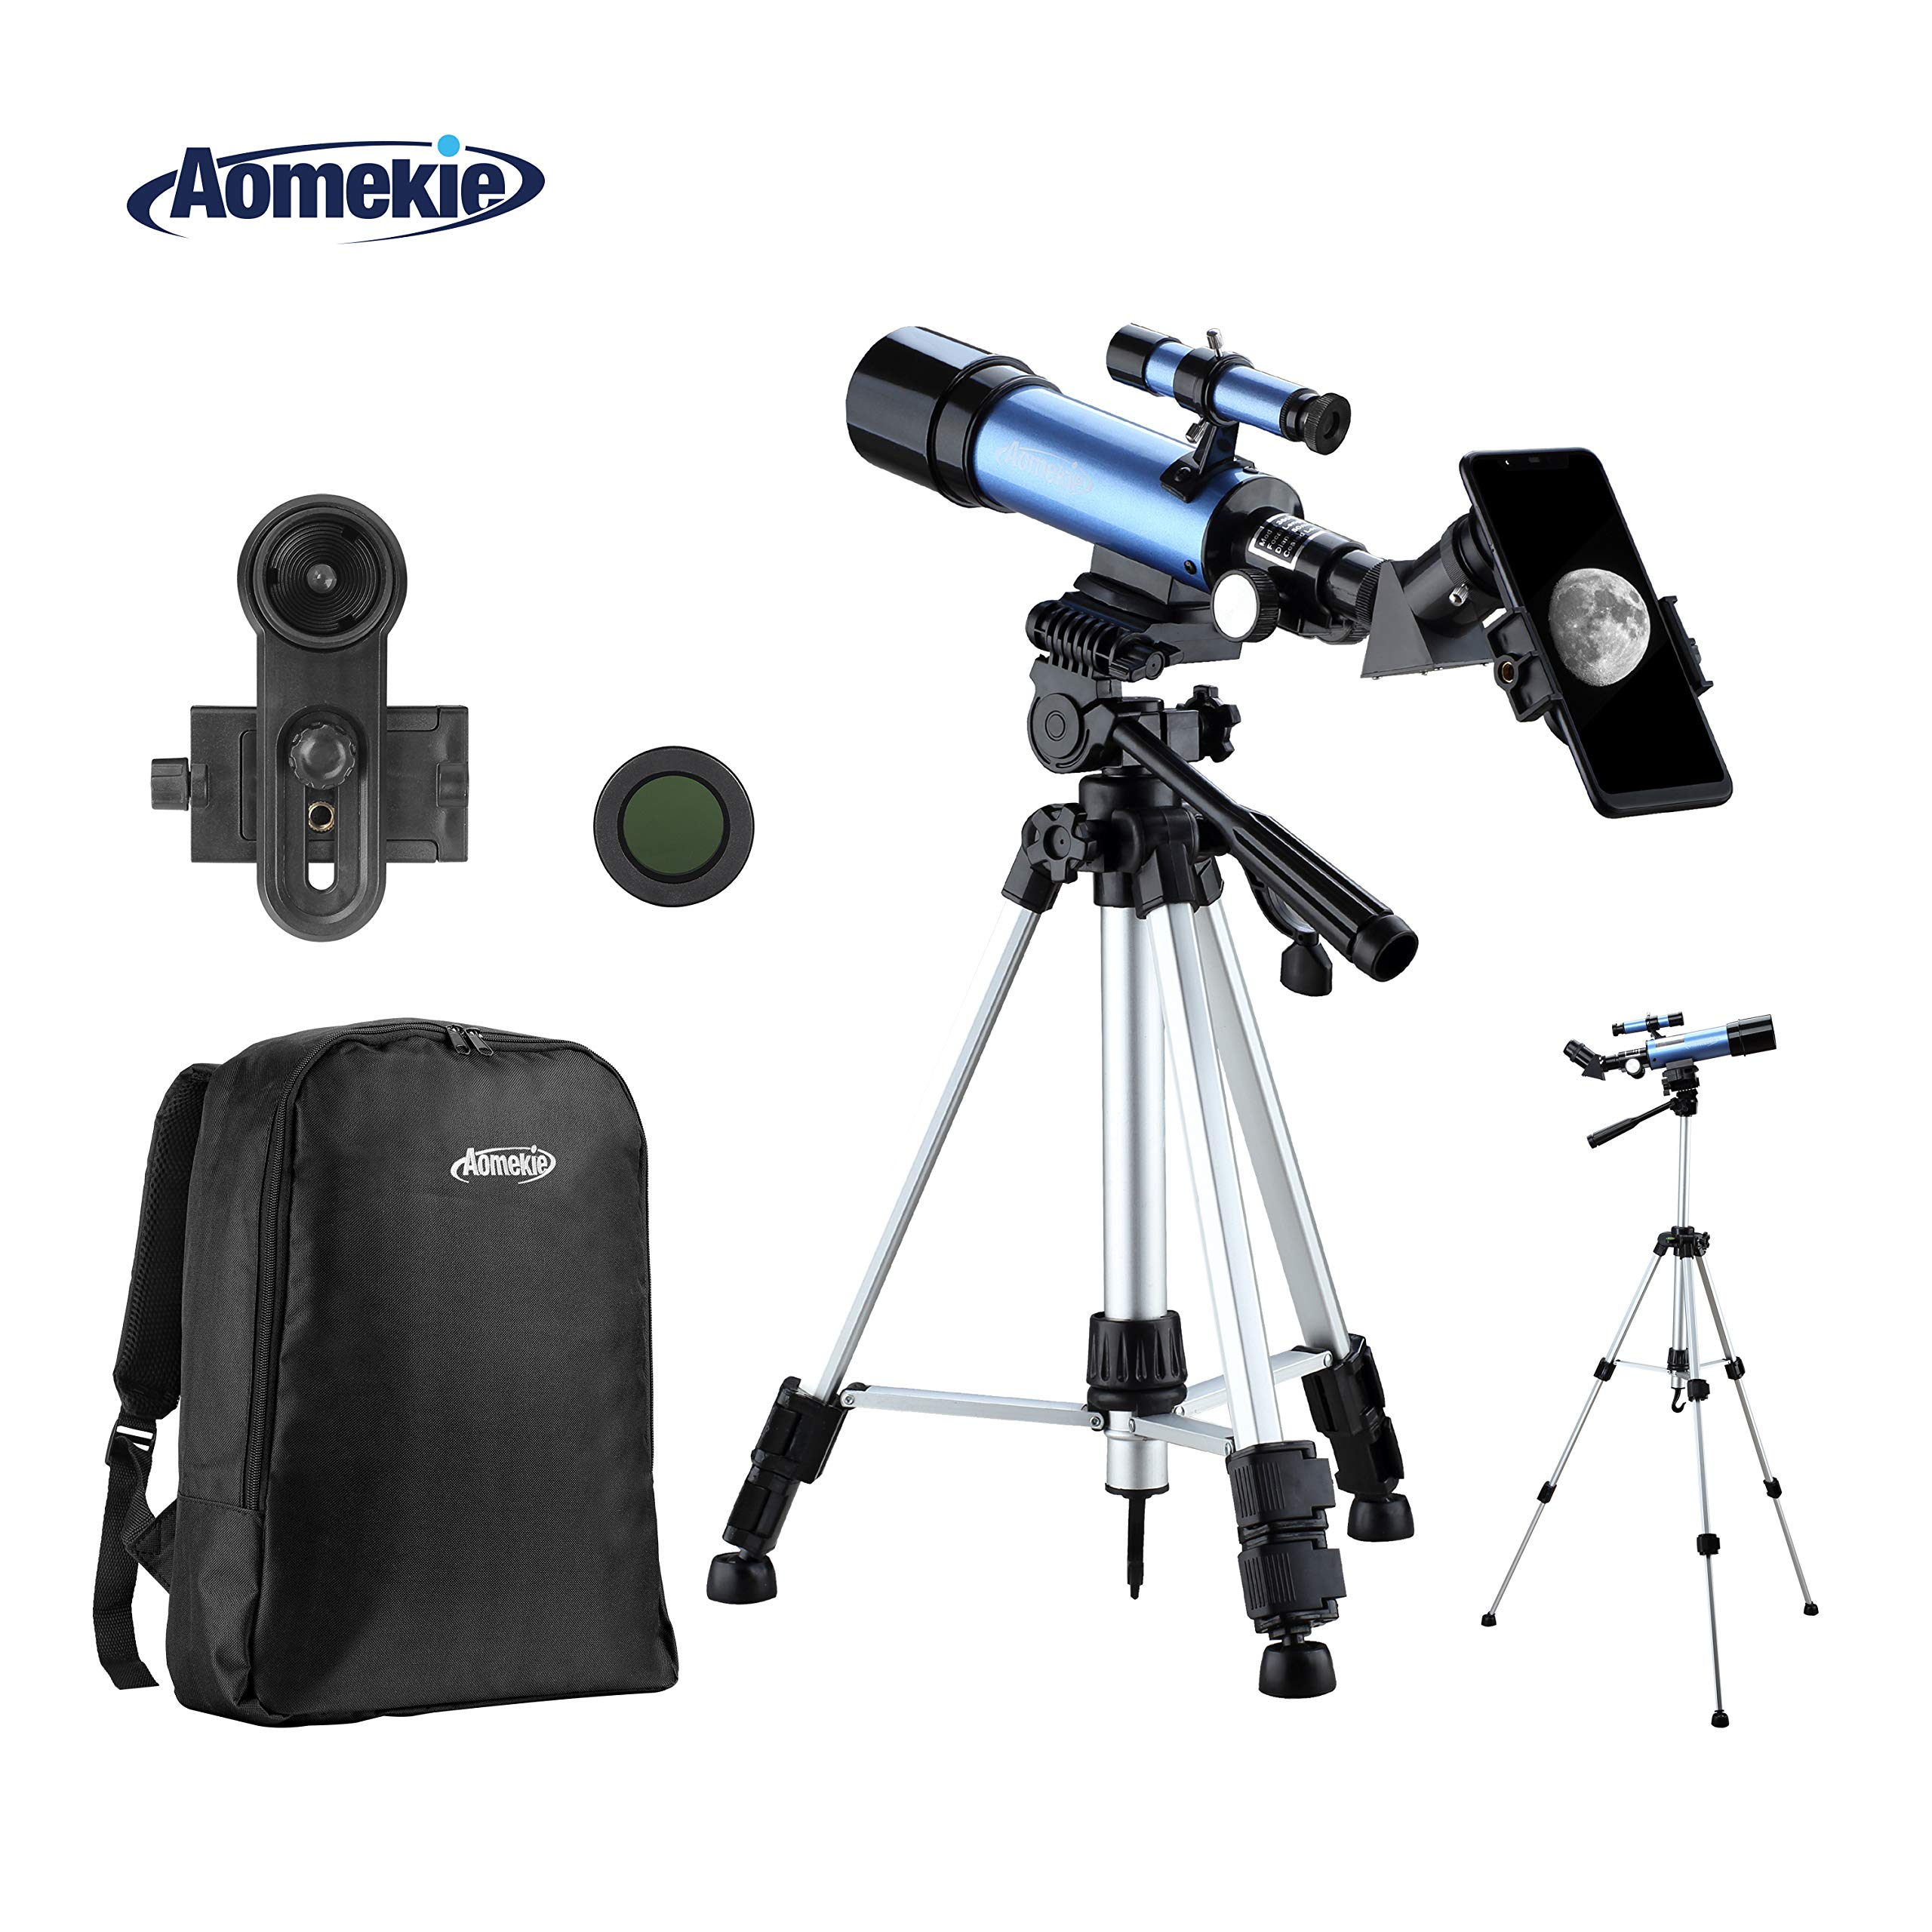 Aomekie Telescopes for Kids Adults Astronomy Beginners Refractor Telescope with Adjustable Tripod 10X Phone Adapter Finderscope Moon Filter 3X Barlow Lens and Backpack by AOMEKIE